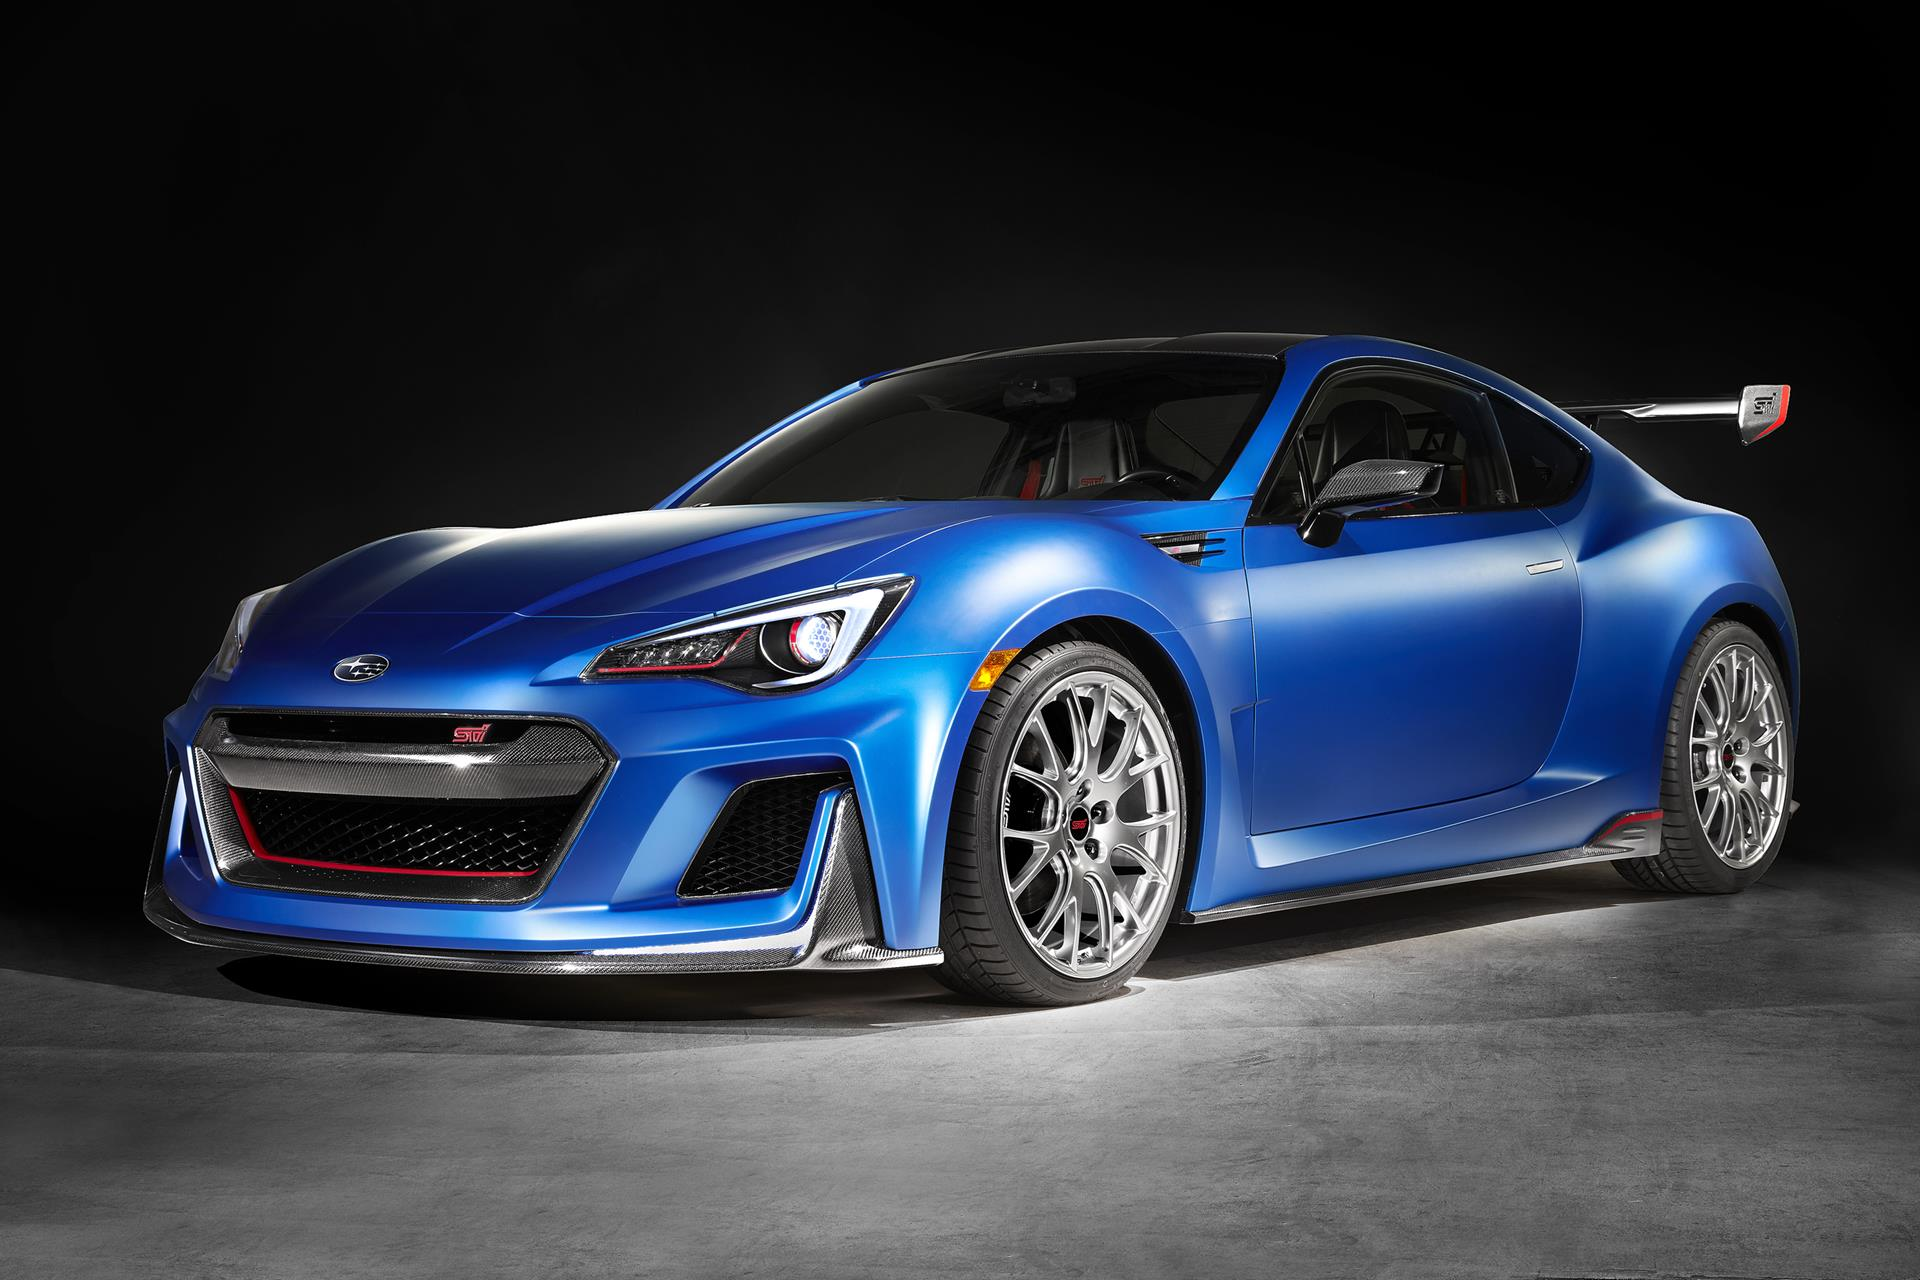 2015 Subaru STI Performance Concept News and Information Research